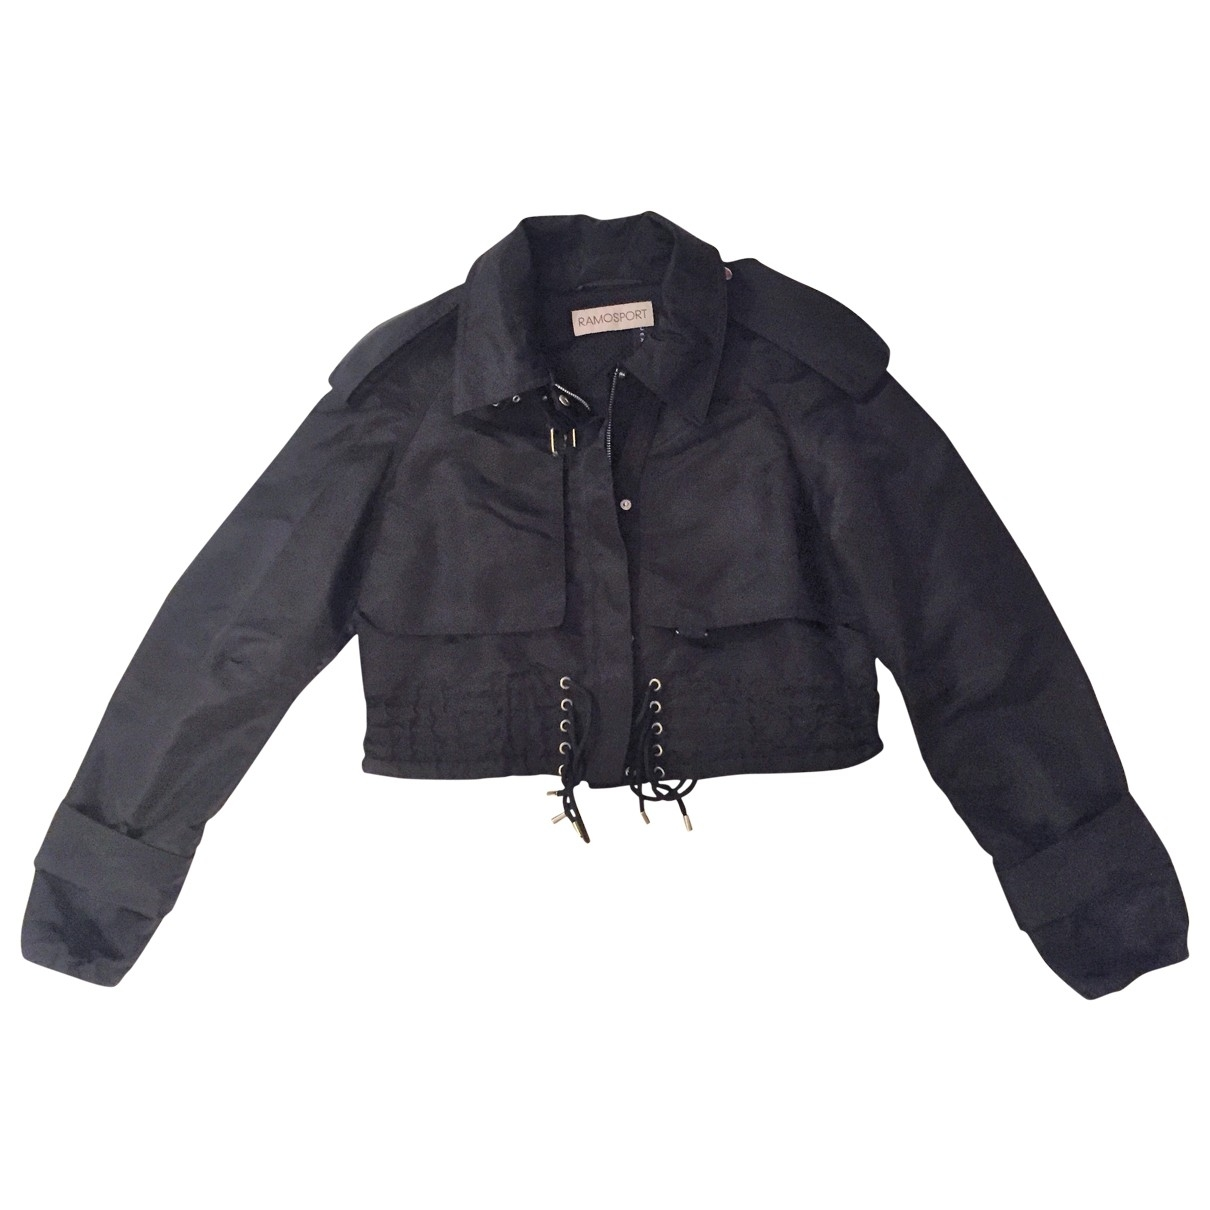 Ramosport \N Black jacket for Women 38 FR